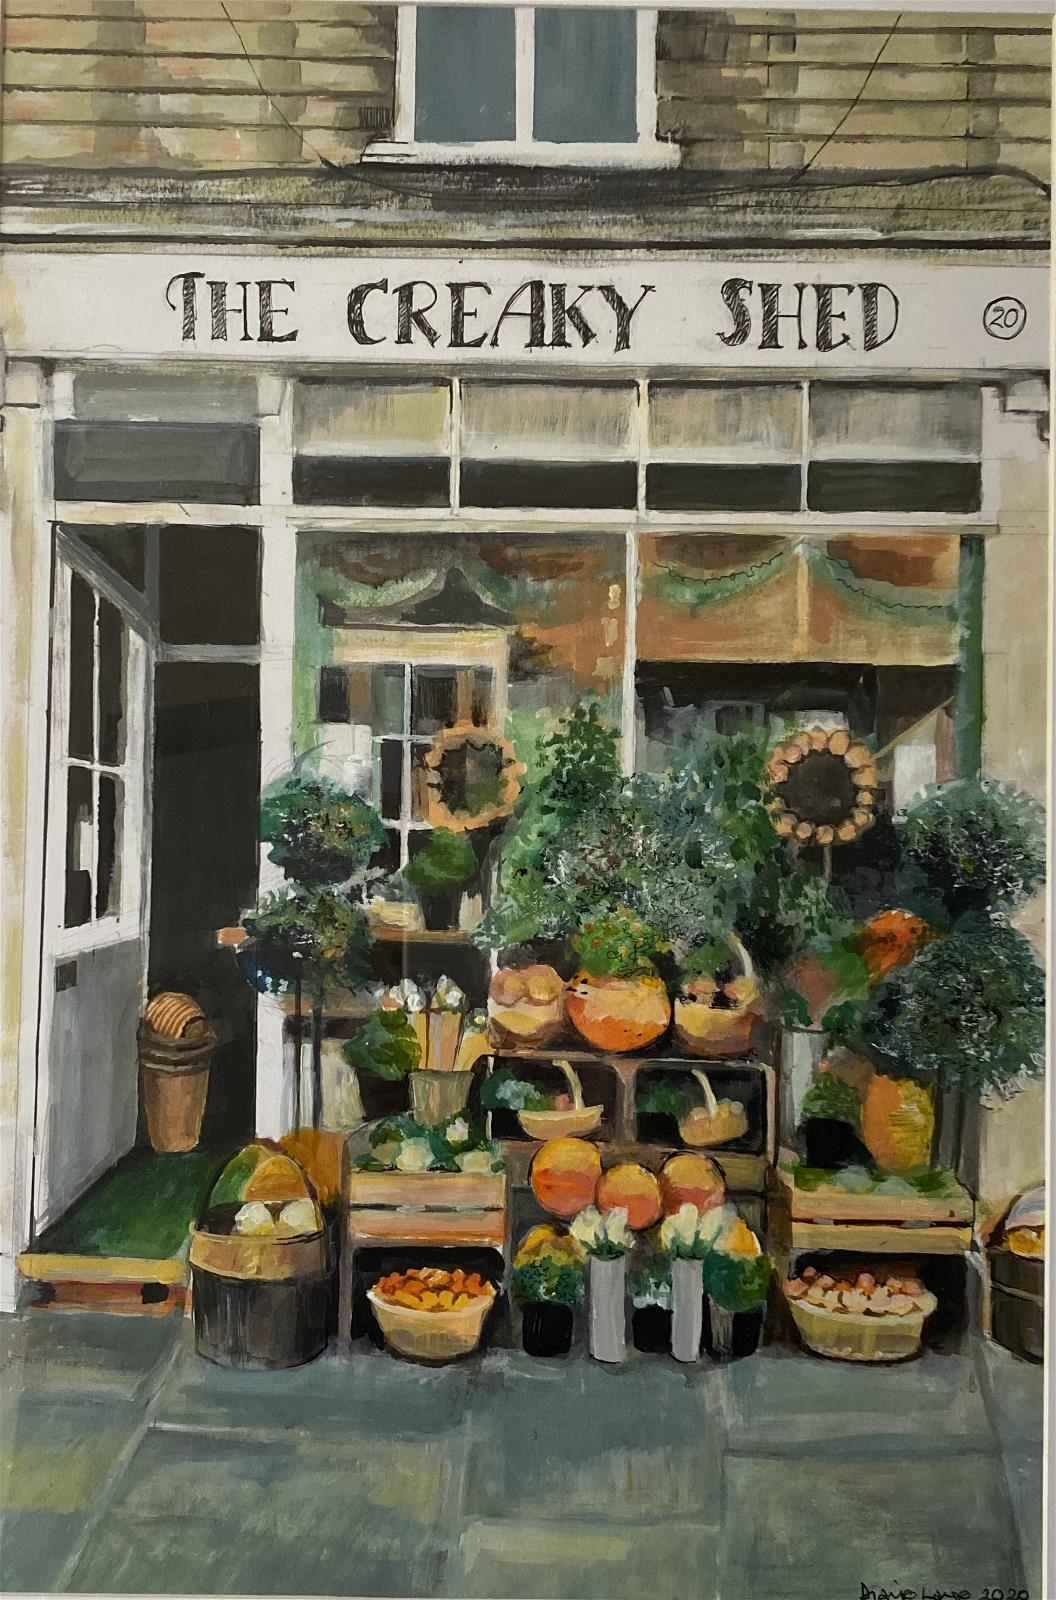 The Creaky Shed